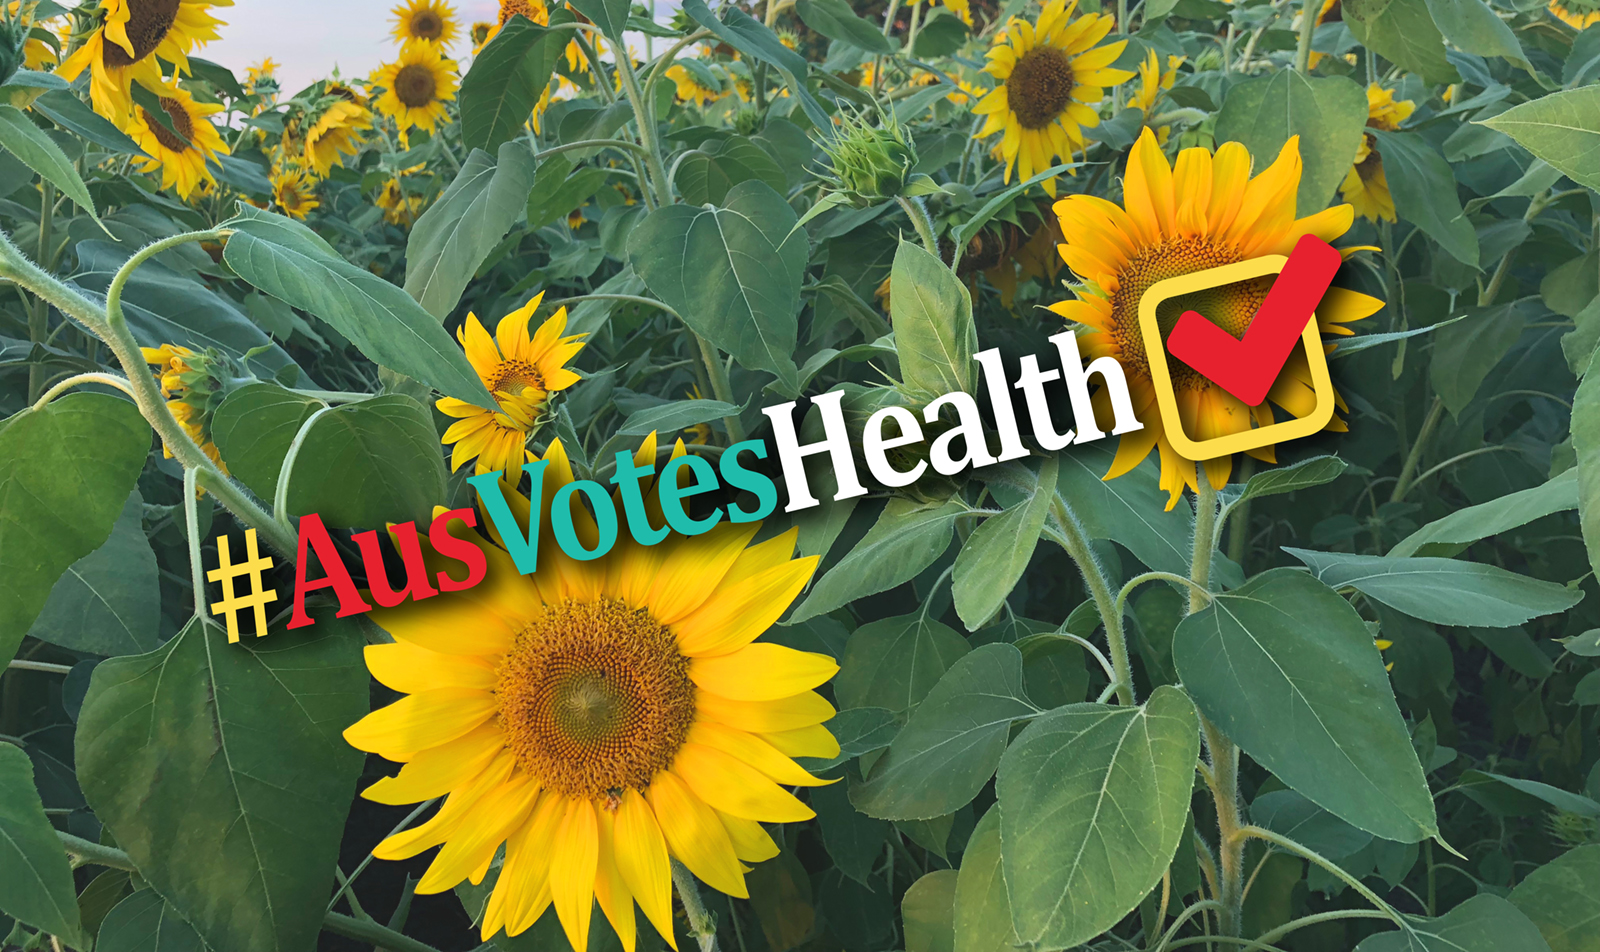 The latest #AusVotesHealth news - on prevention, justice, gender equality, and bike paths